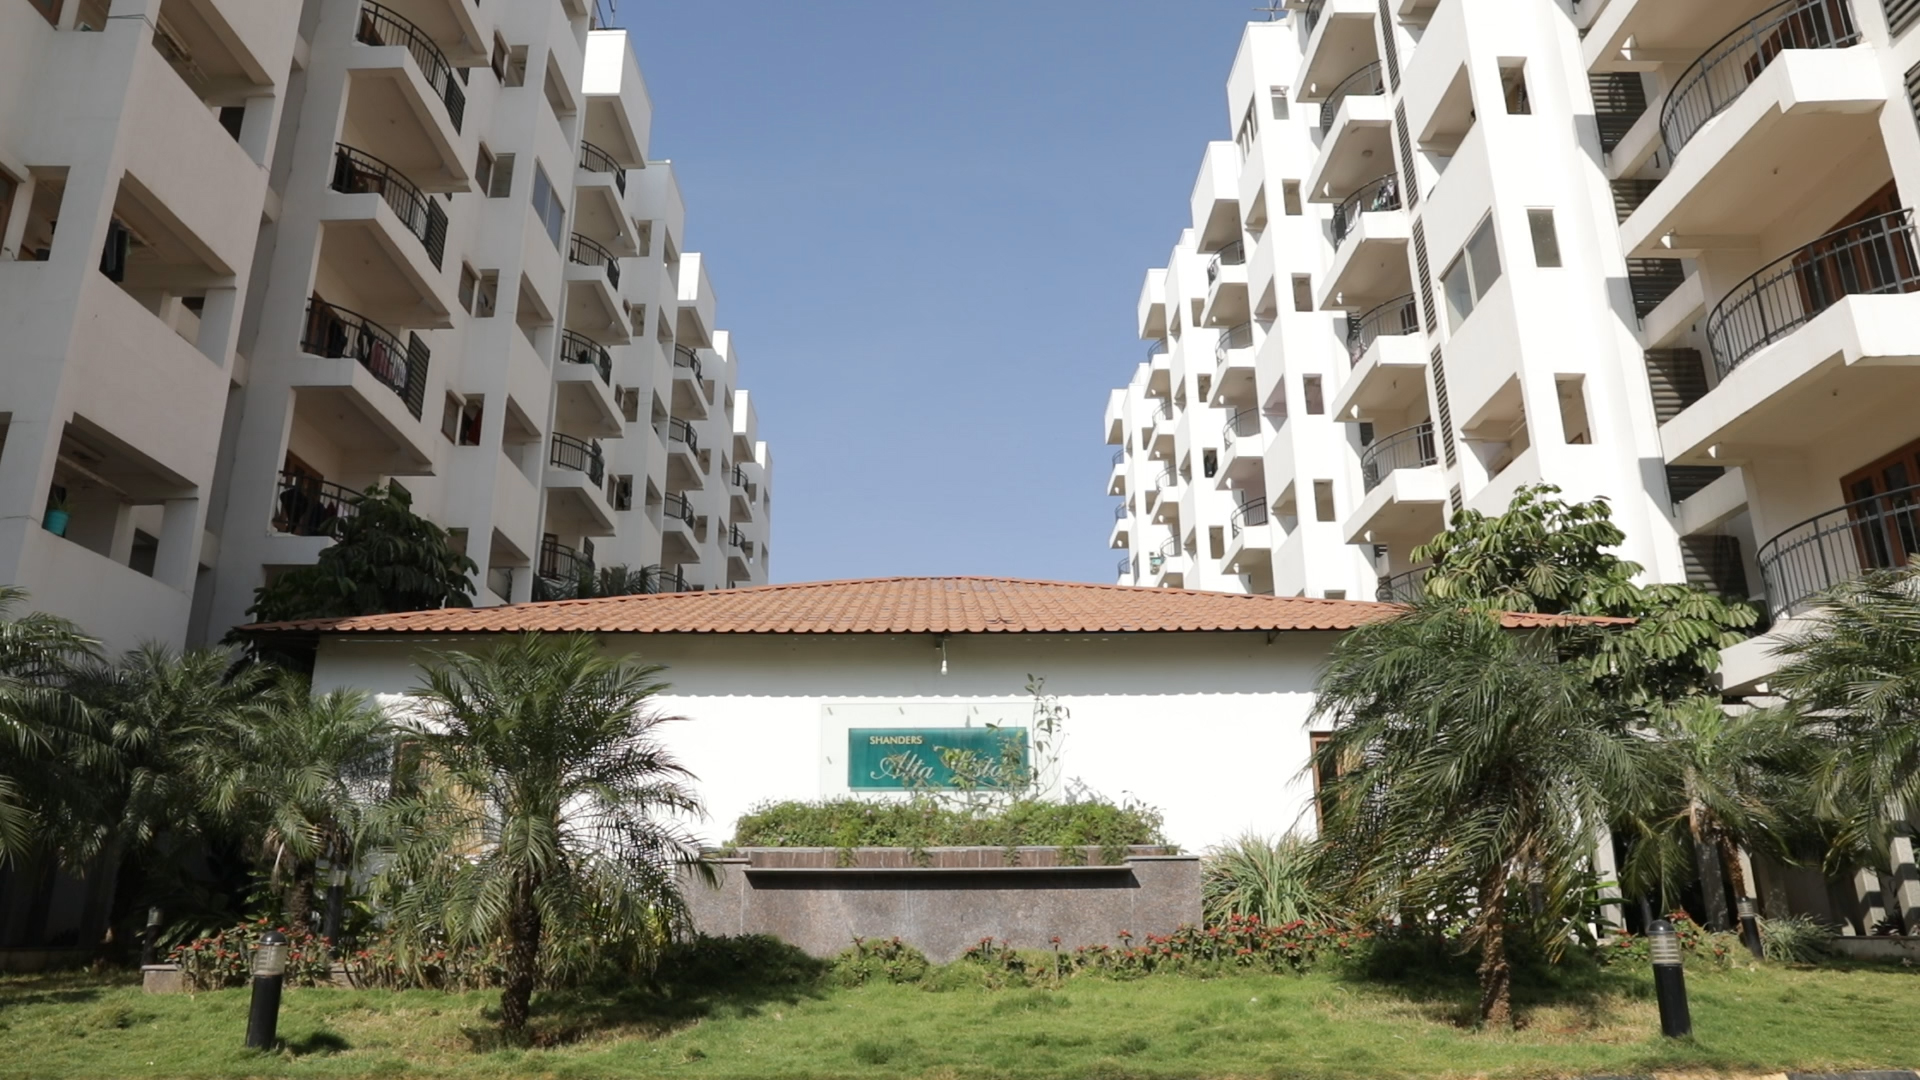 Guesture announces the addition of 2500 beds to accommodate the growing demand in Bengaluru Photo